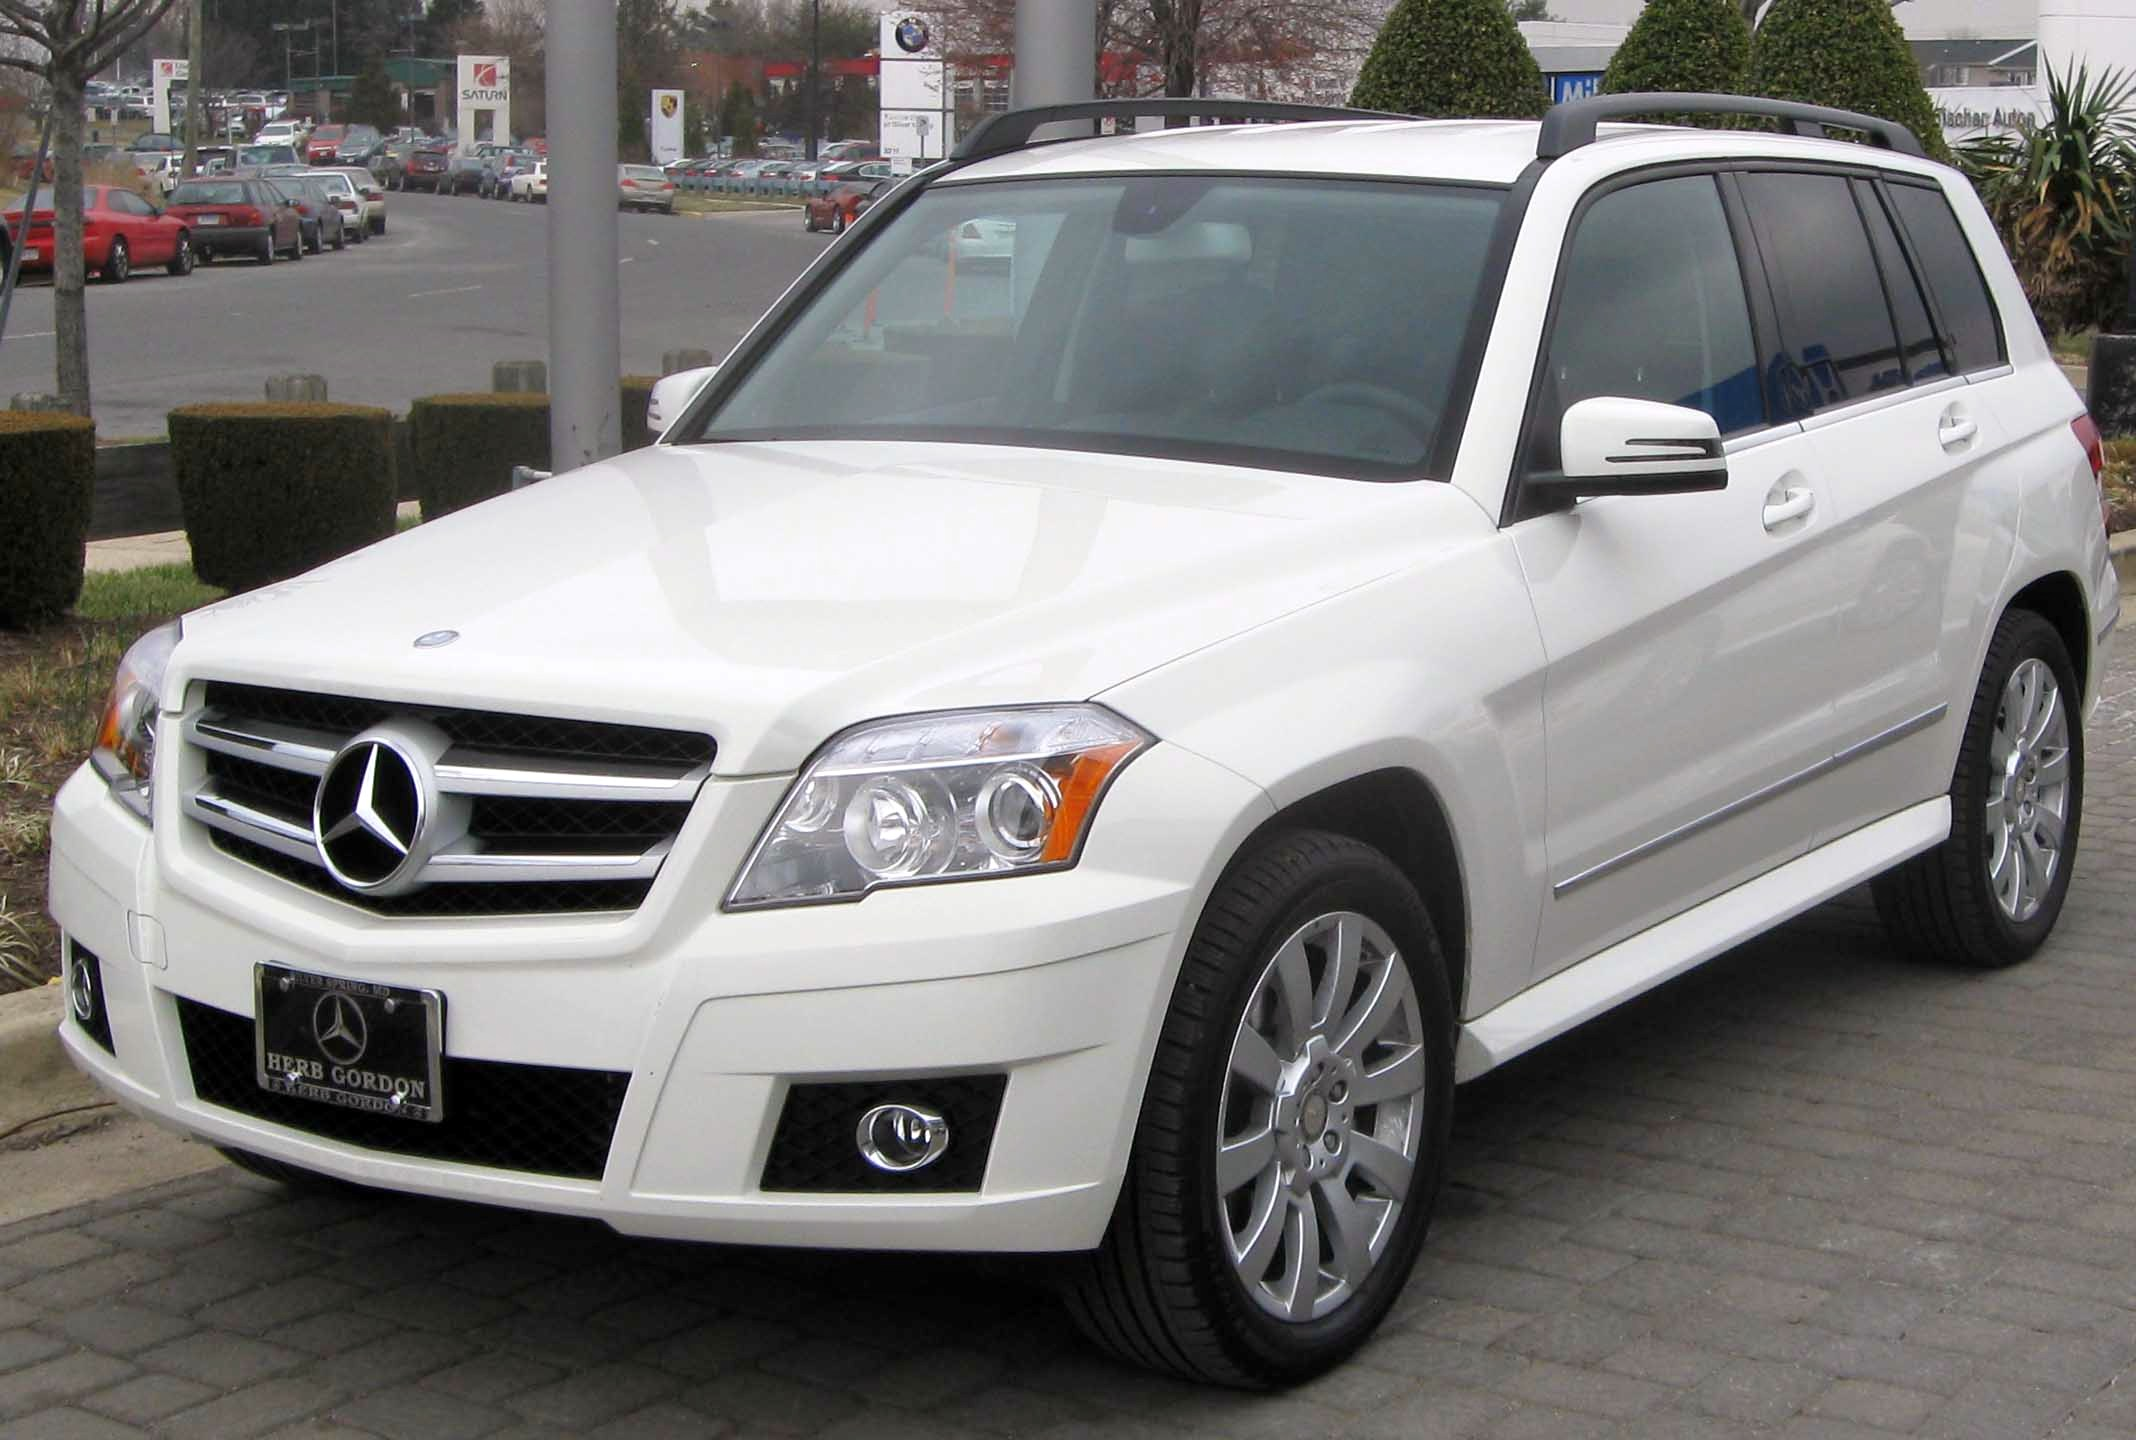 GLK350 car - Color: White  // Description: dynamic